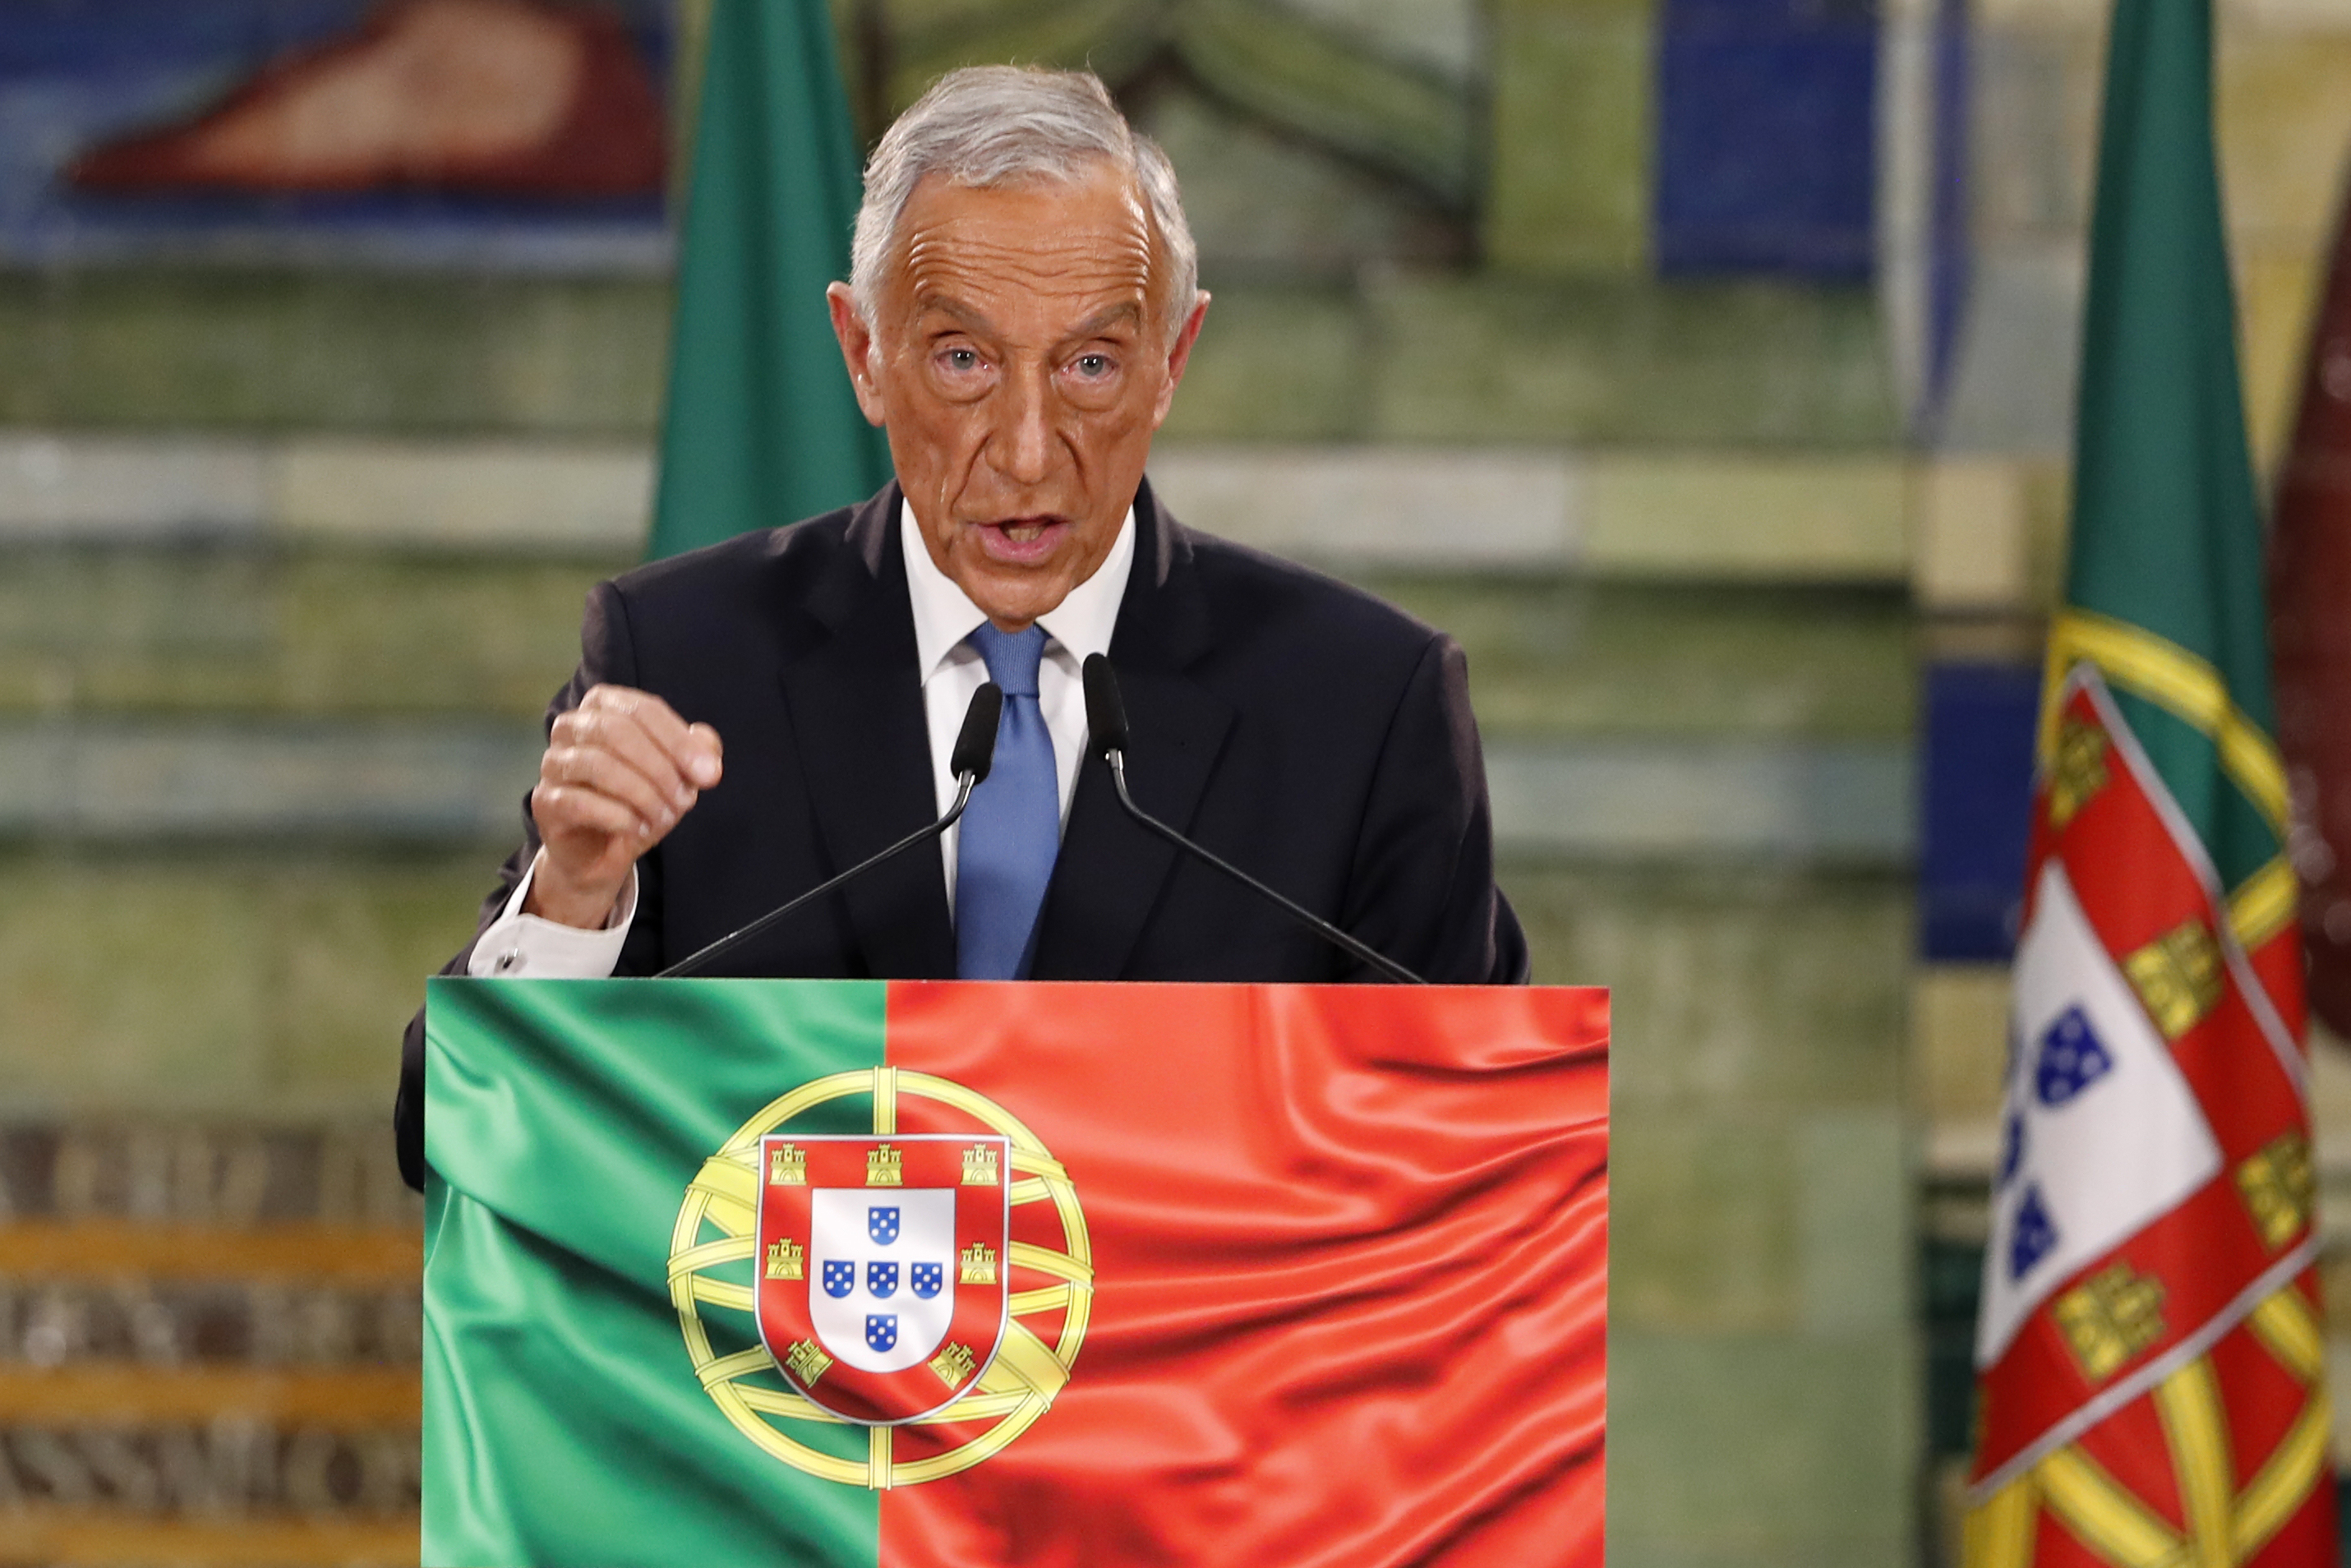 Incumbent Marcelo Rebelo de Sousa delivers a speech following the results of Portugal's presidential election, in Lisbon, Monday, Jan. 25, 2021. Rebelo de Sousa was reelected for a second five-year term. Photo: AP